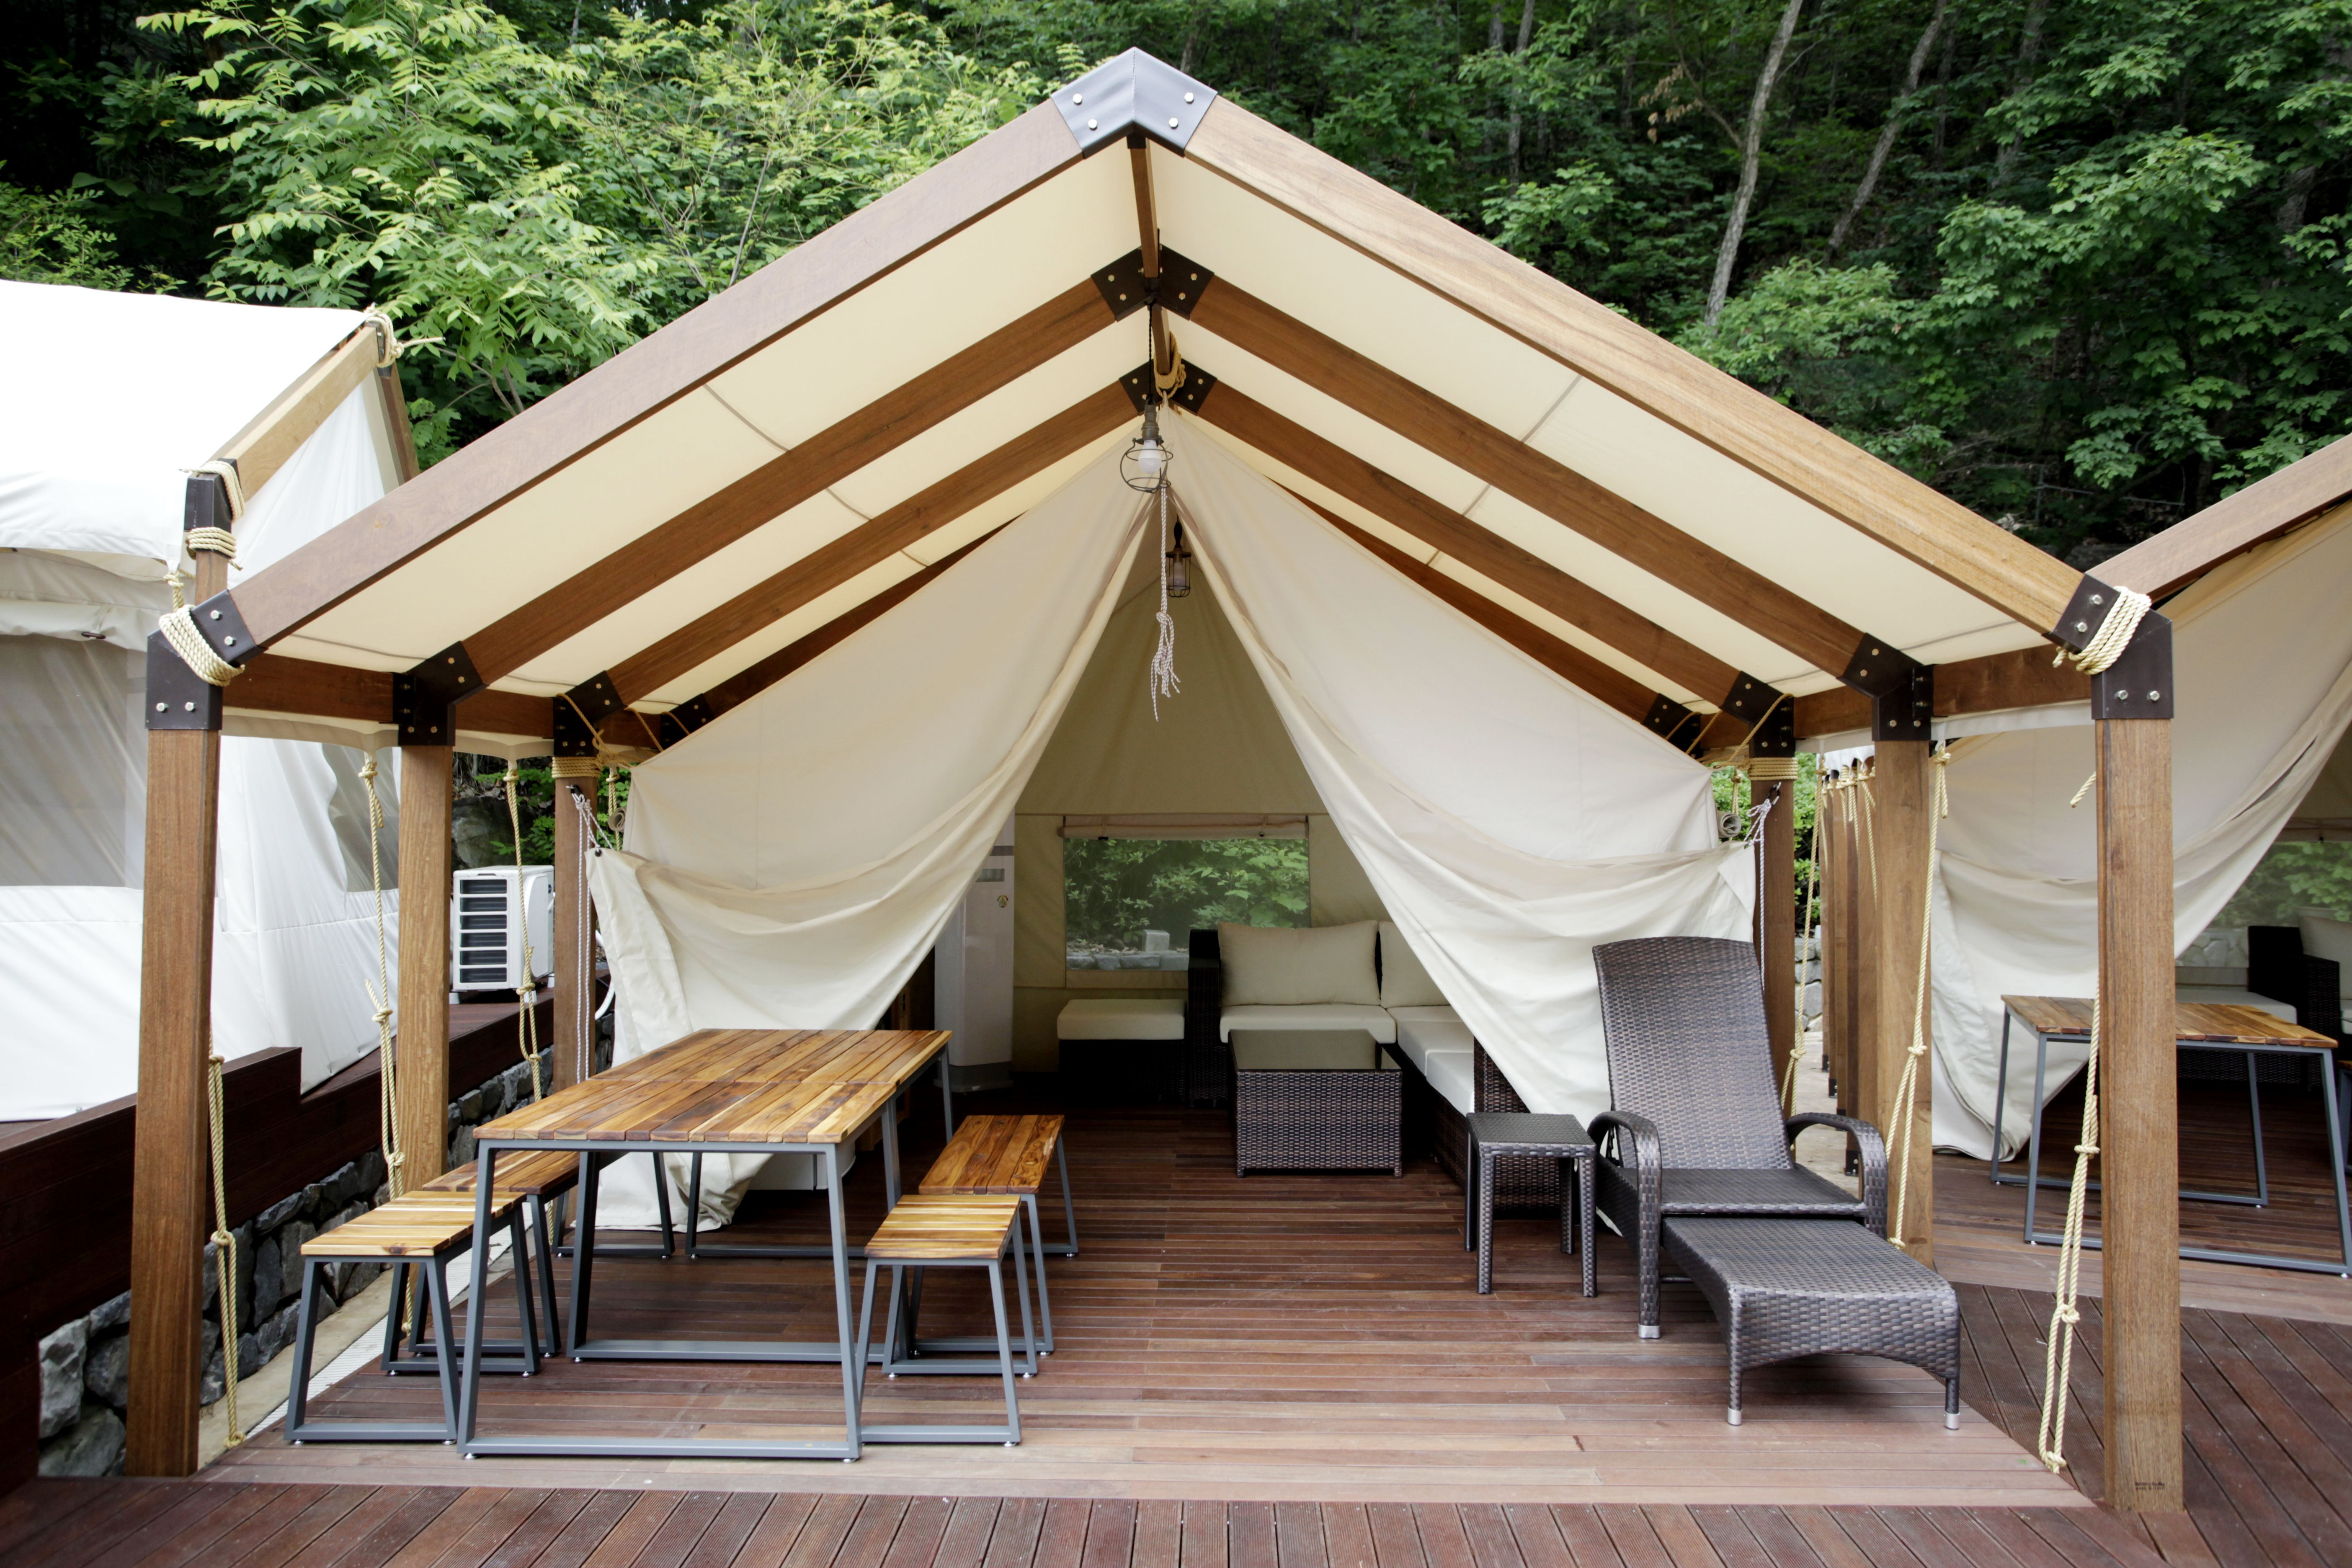 Ocean World Glamping Tent Camping Carpas Aire Libre